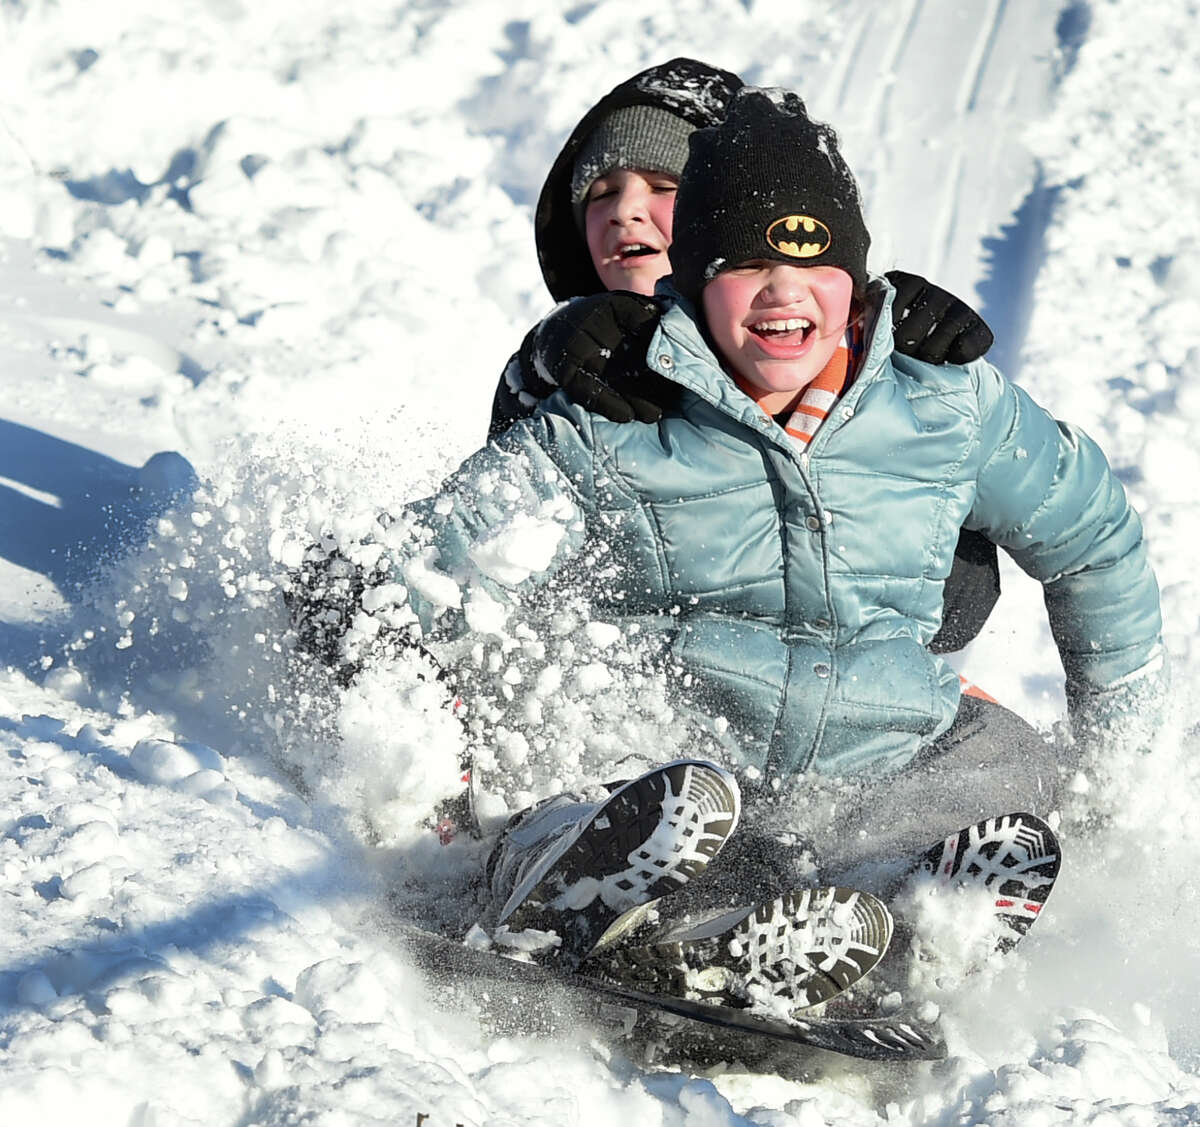 (Peter Hvizdak - New Haven Register) Jorge Velez, 11, left rear, and his sister Ana Laura Velez, 12, slide down a hill together at East Shore Park in New Haven Wednesday, January 28, 2015.